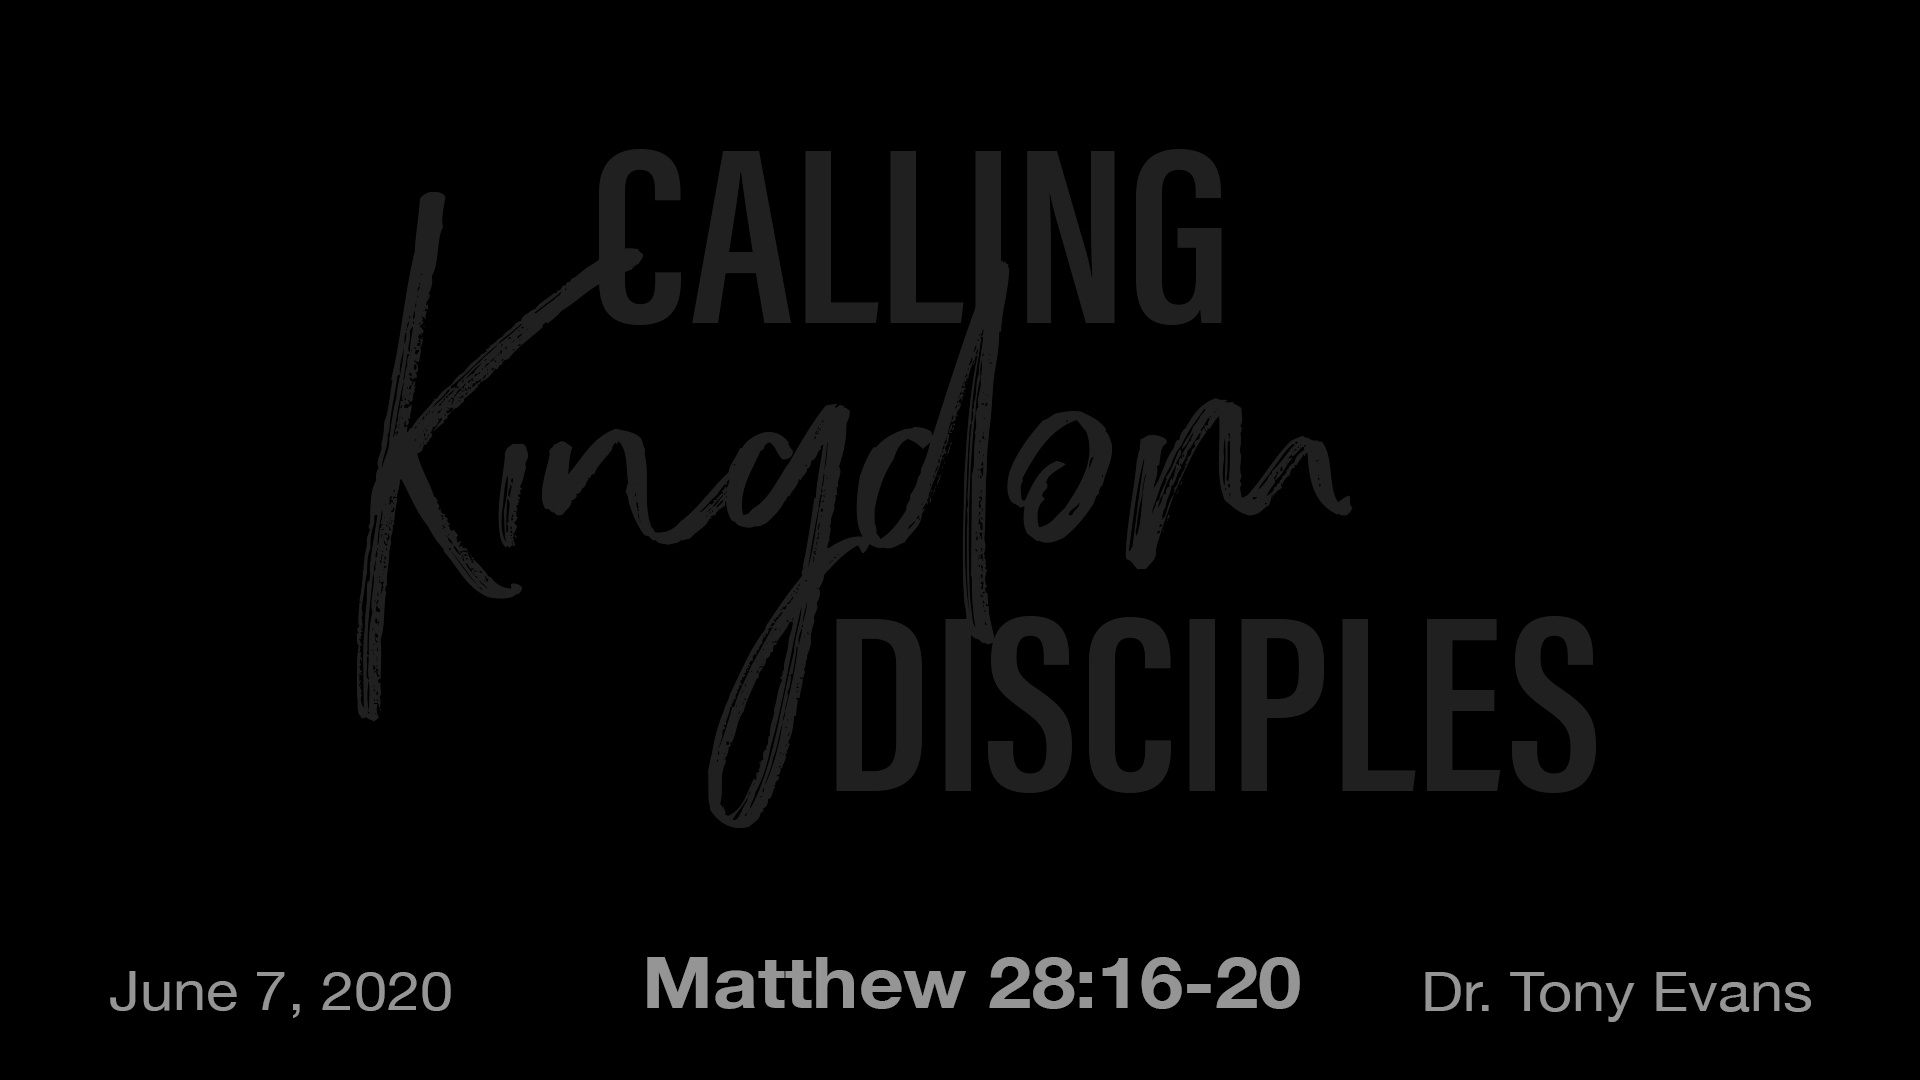 Calling Kingdom Disciples by Dr. Tony Evans